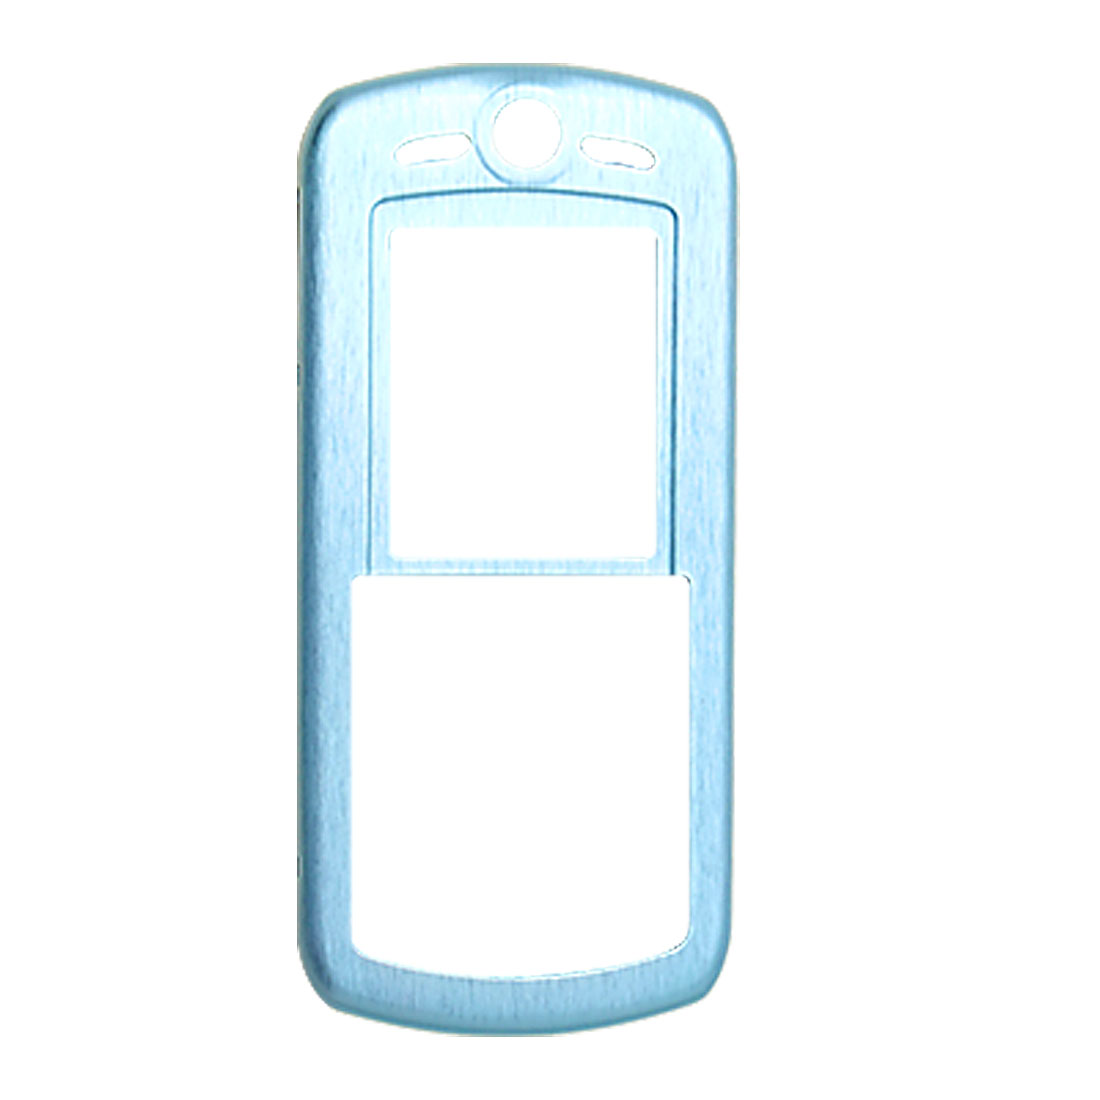 Super Slim Aluminum Metal Case Skin for Motorola L9 Sky Blue